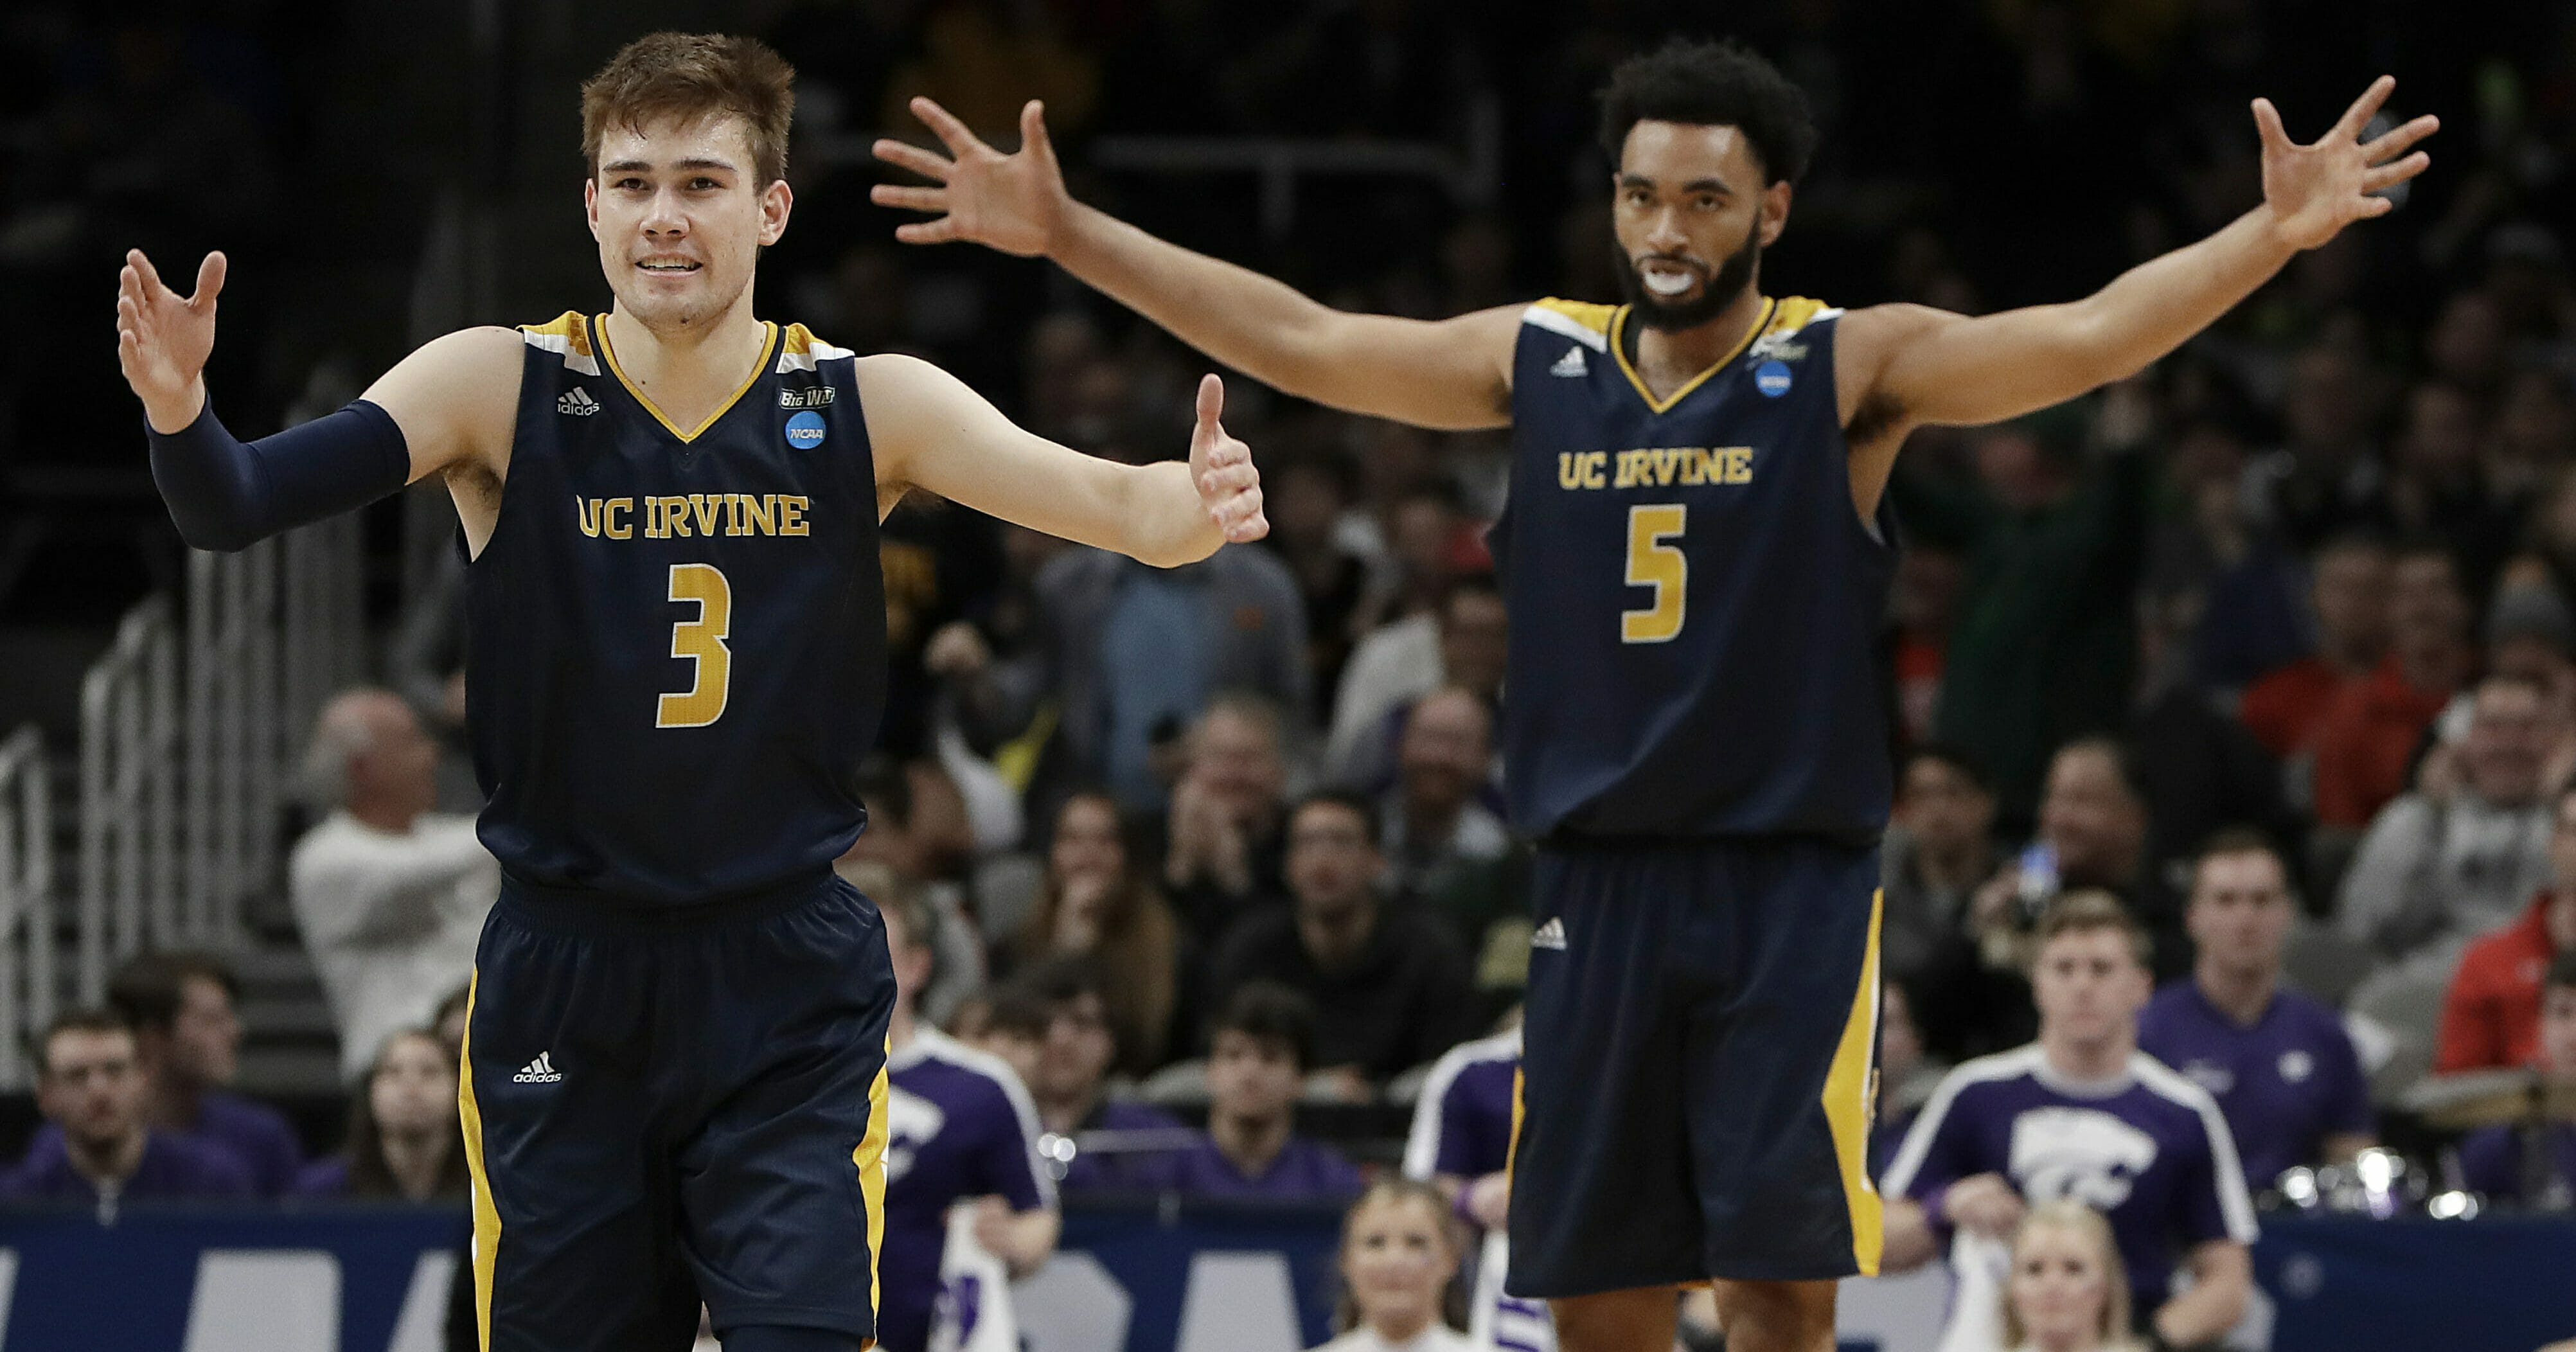 UC Irvine guard Robert Cartwright (3) and forward Jonathan Galloway (5) celebrate during the Anteaters' first-round upset of Kansas State